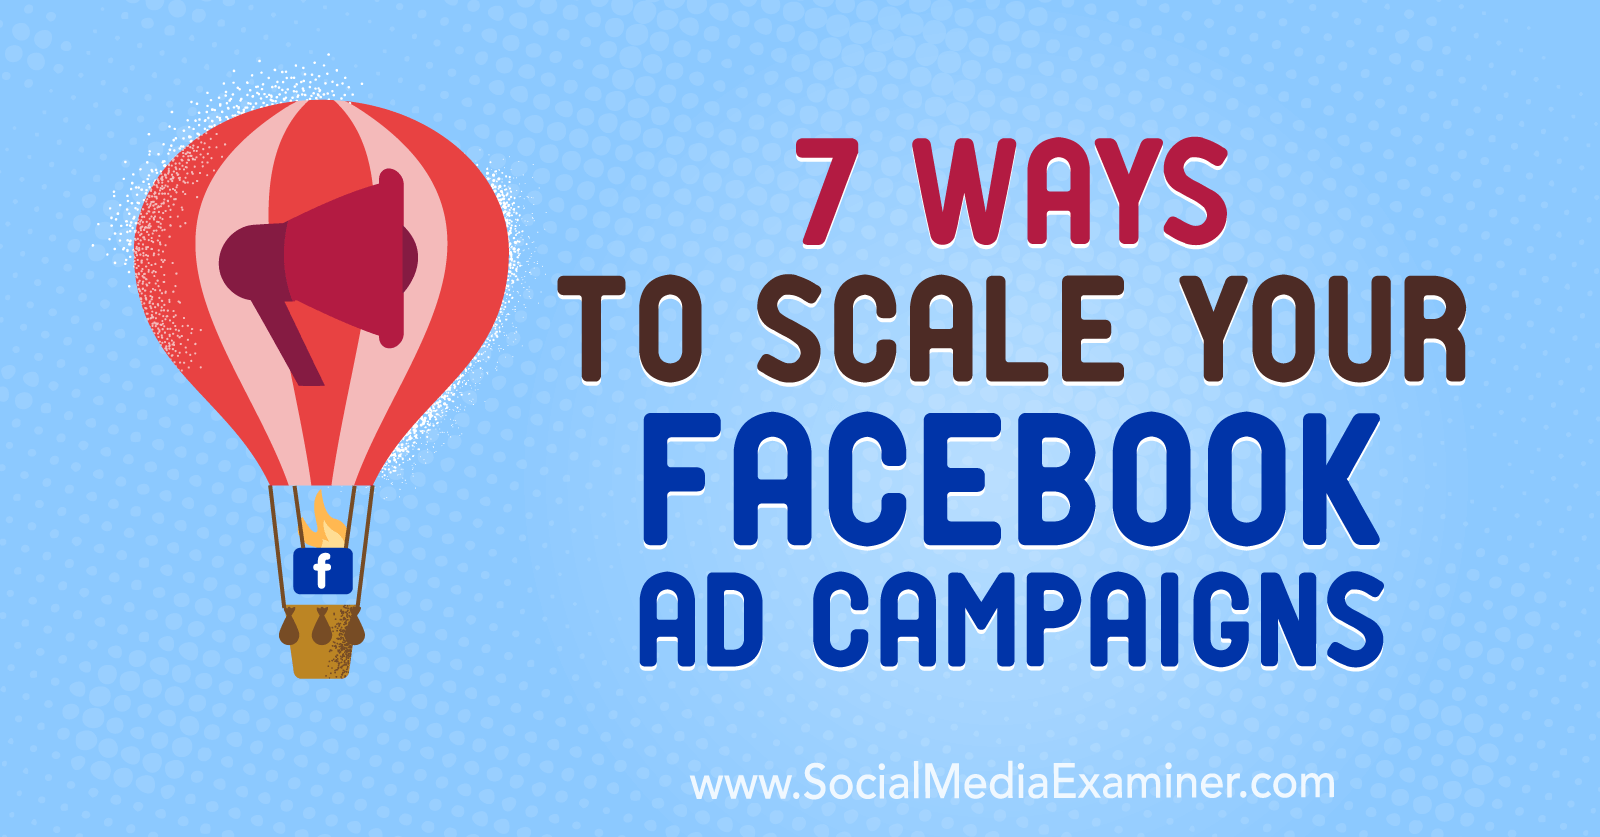 7 Ways to Scale Your Facebook Ad Campaigns : Social Media Examiner